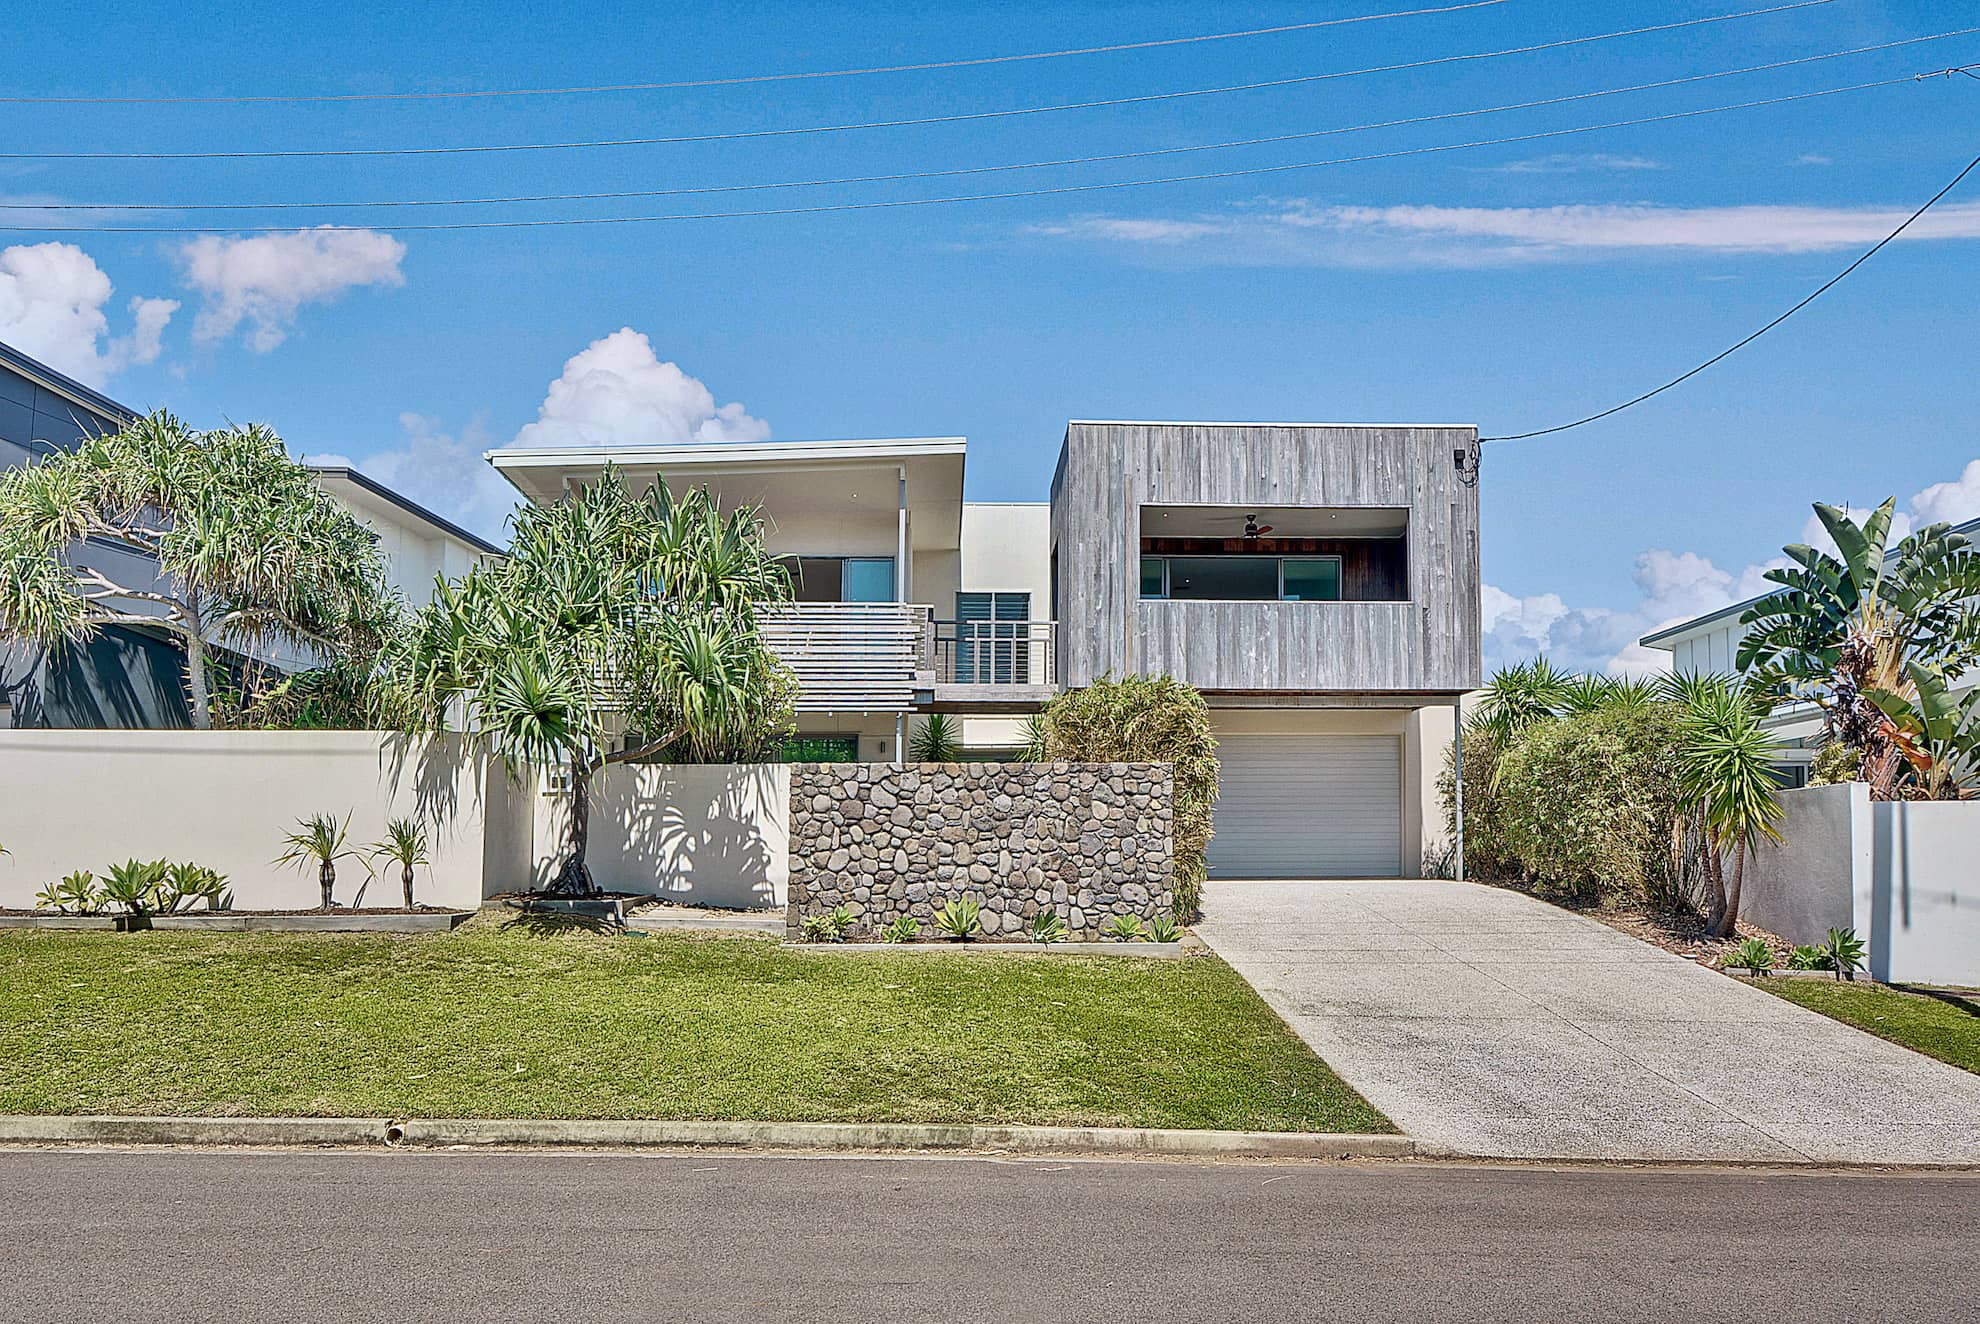 Mackay Street project by mdesign, a building design practice that operates on the Sunshine Coast.